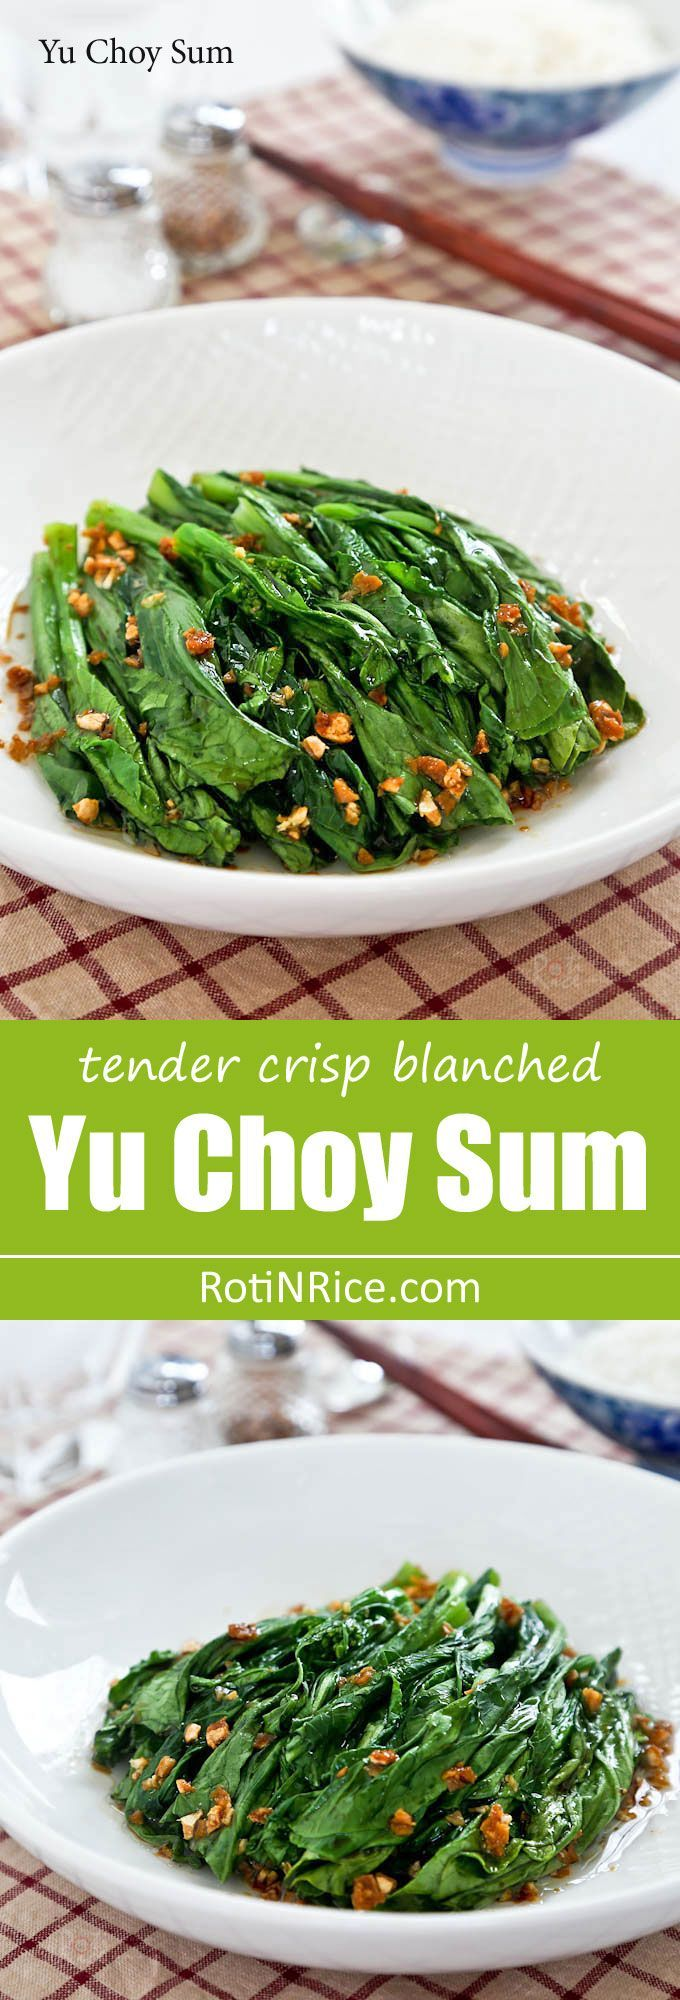 Tender crisp blanched Yu Choy Sum in a simple garlic oil and soy sauce dressing. Just a handful of ingredients and only minutes to prepare. | http://RotiNRice.com